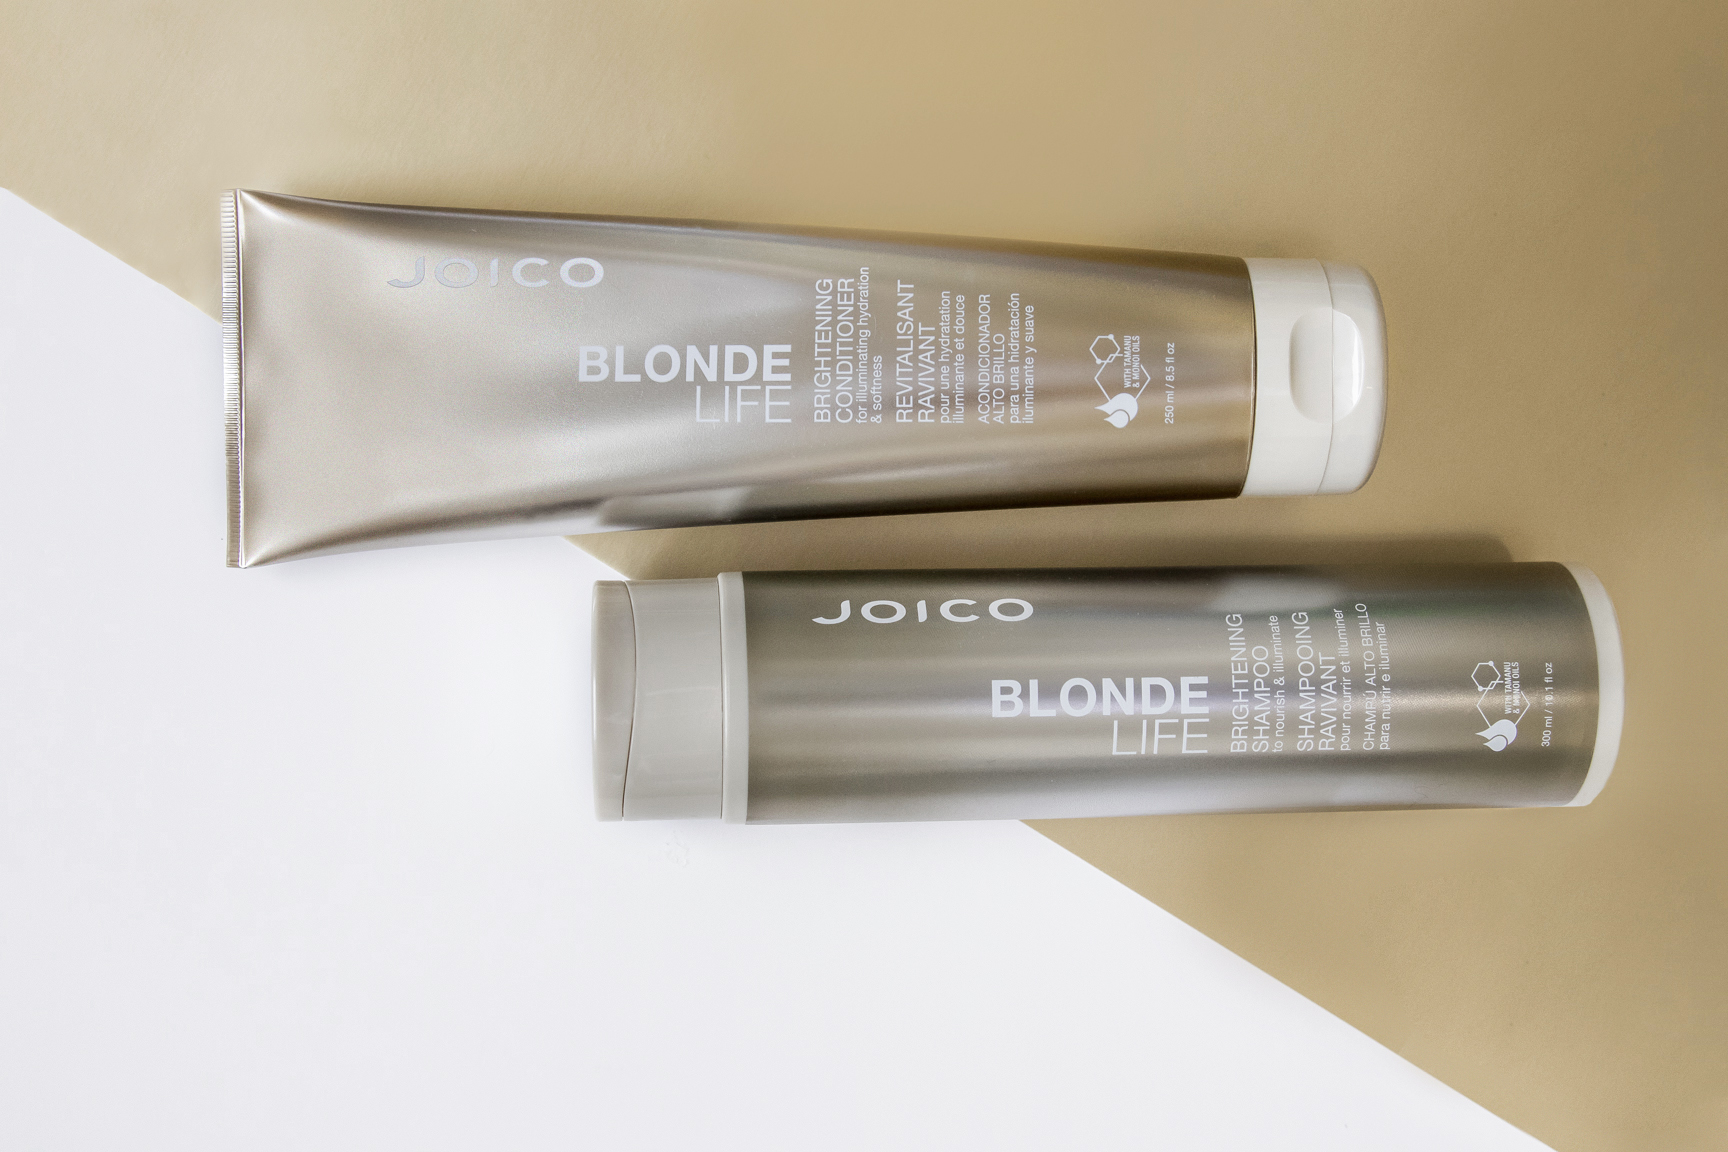 Blonde Life Shampoo and Conditioner bottles